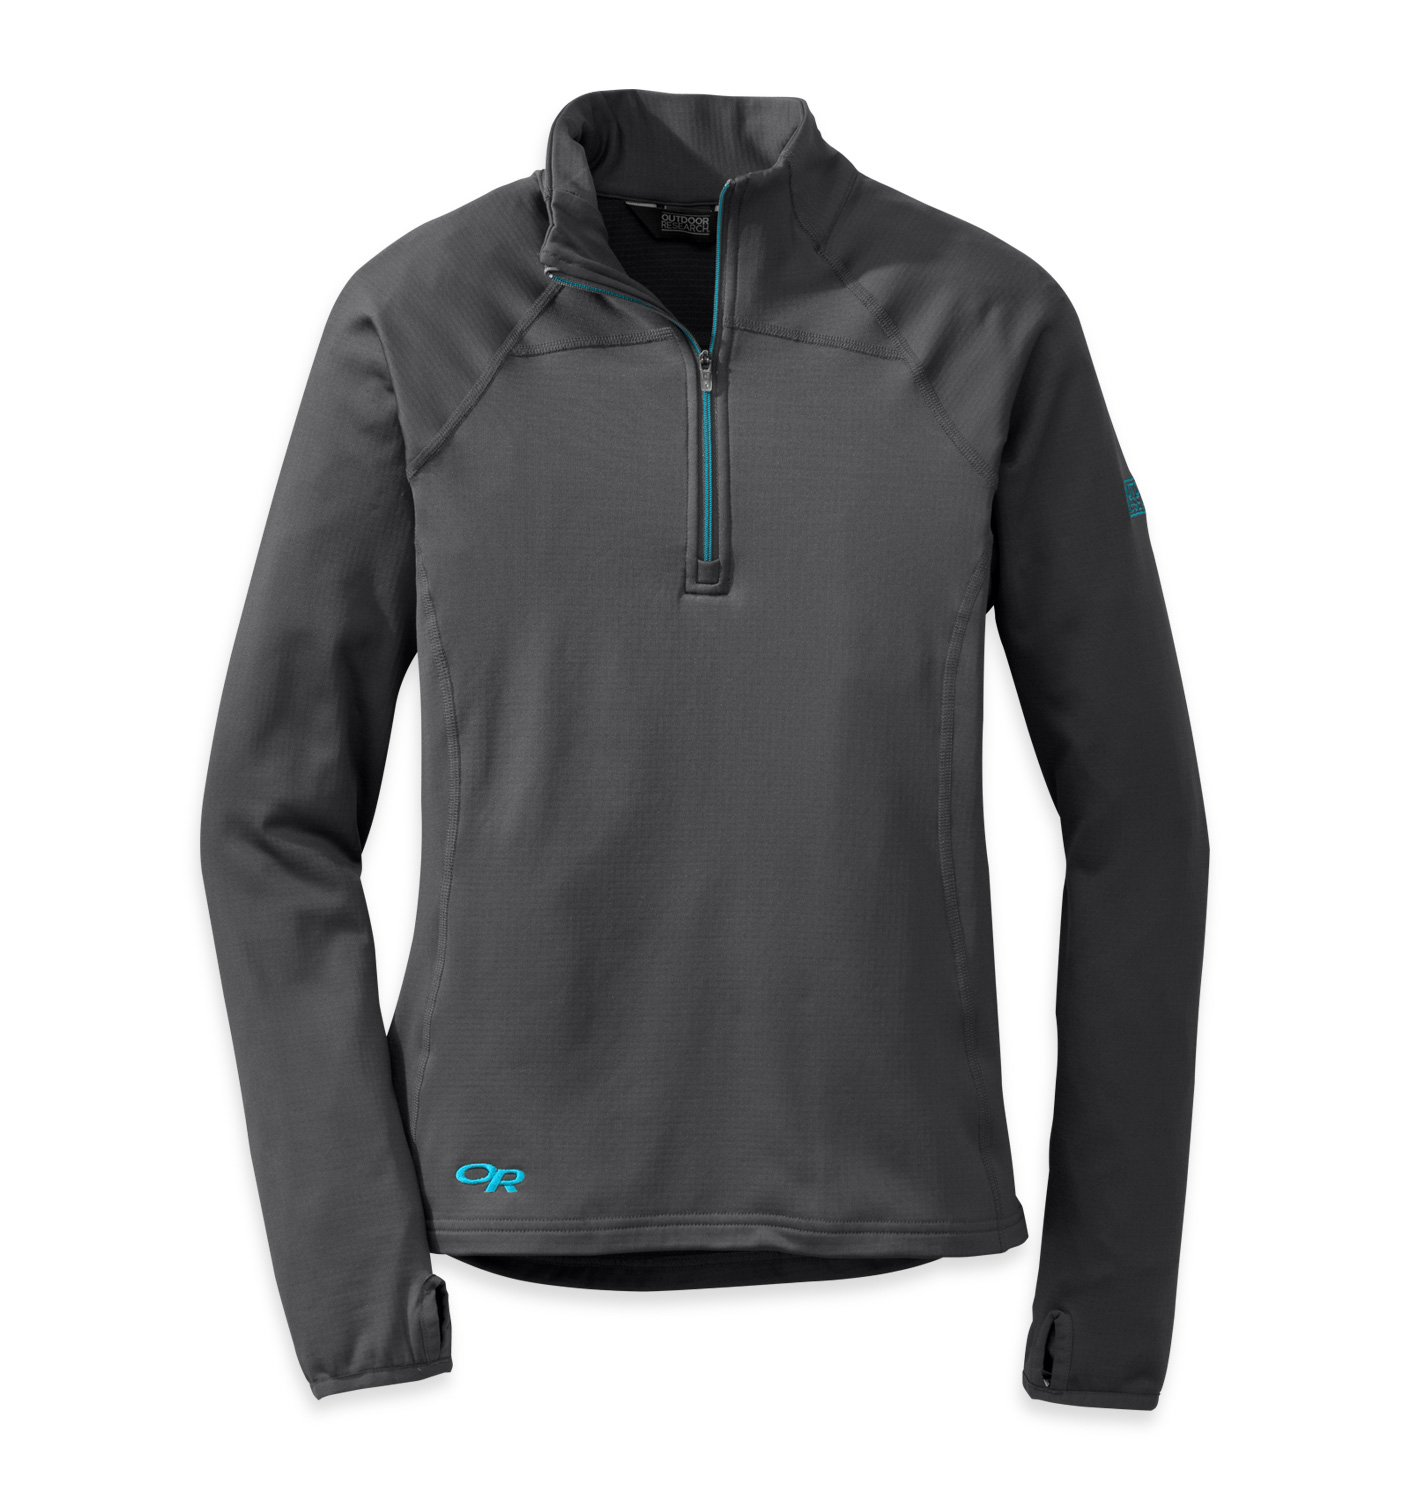 Outdoor Research Women's Radiant LT Zip Top, Charcoal/Rio, Small by Outdoor Research